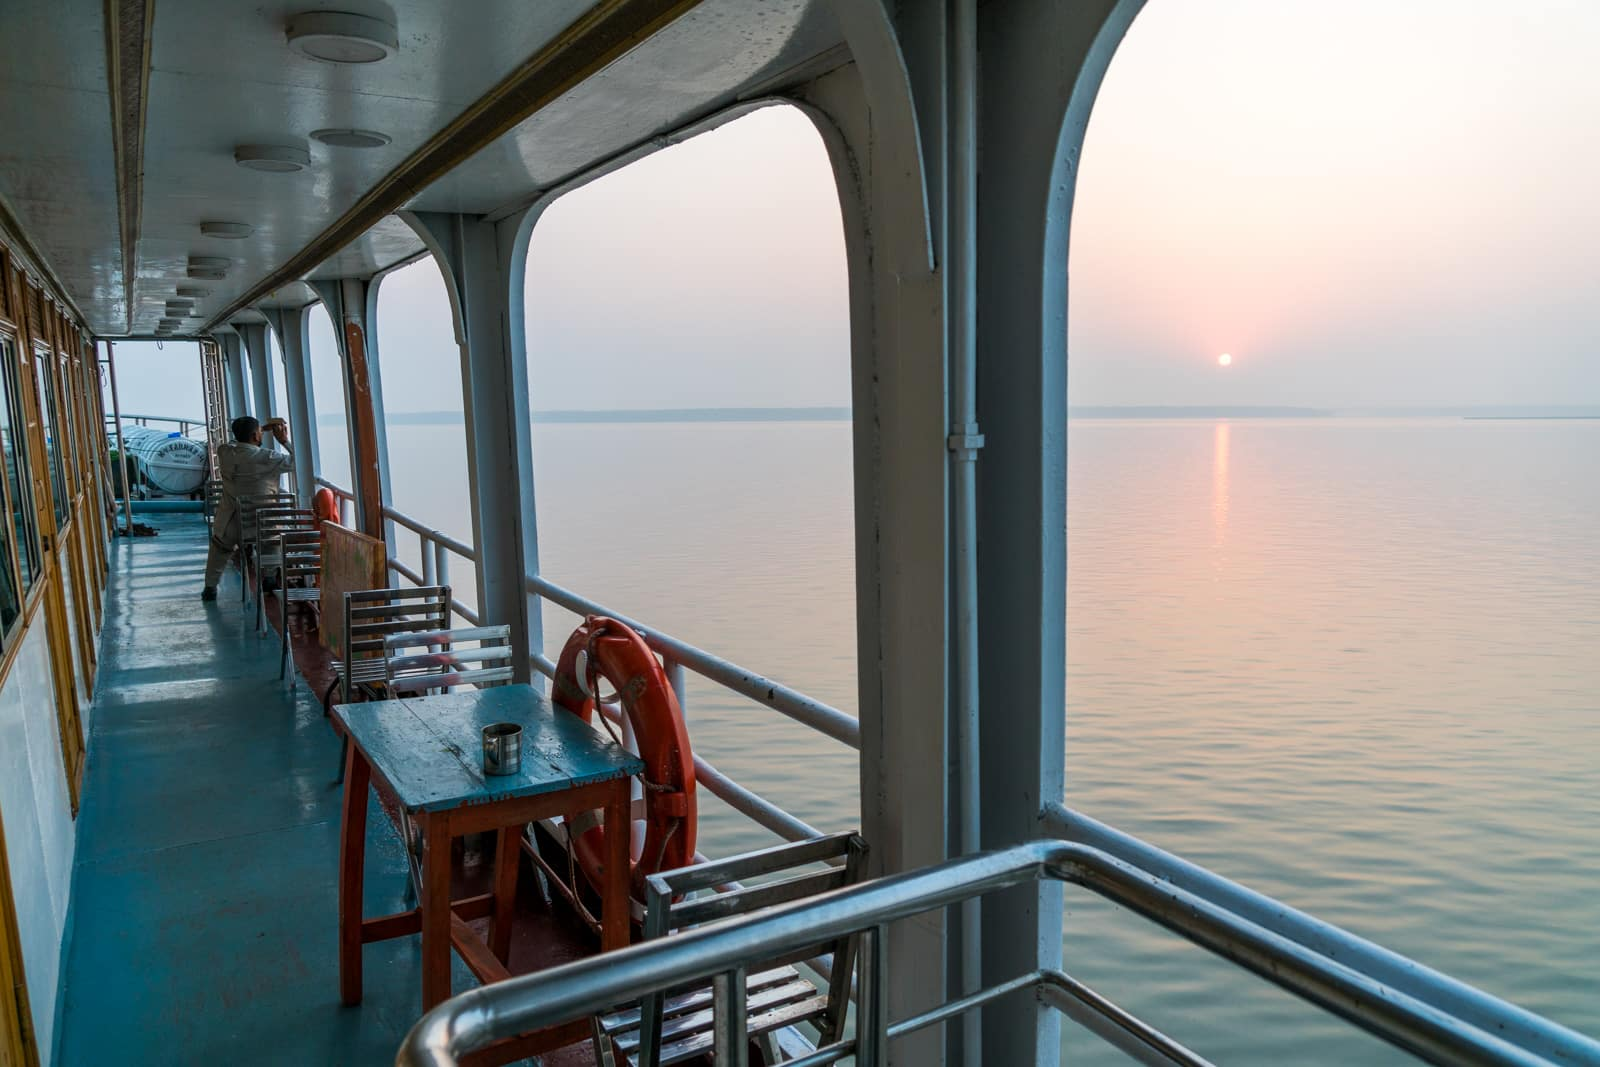 Guide to launches in Bangladesh - Sunrise from a launch headed to Hatiya island - Lost With Purpose travel blog